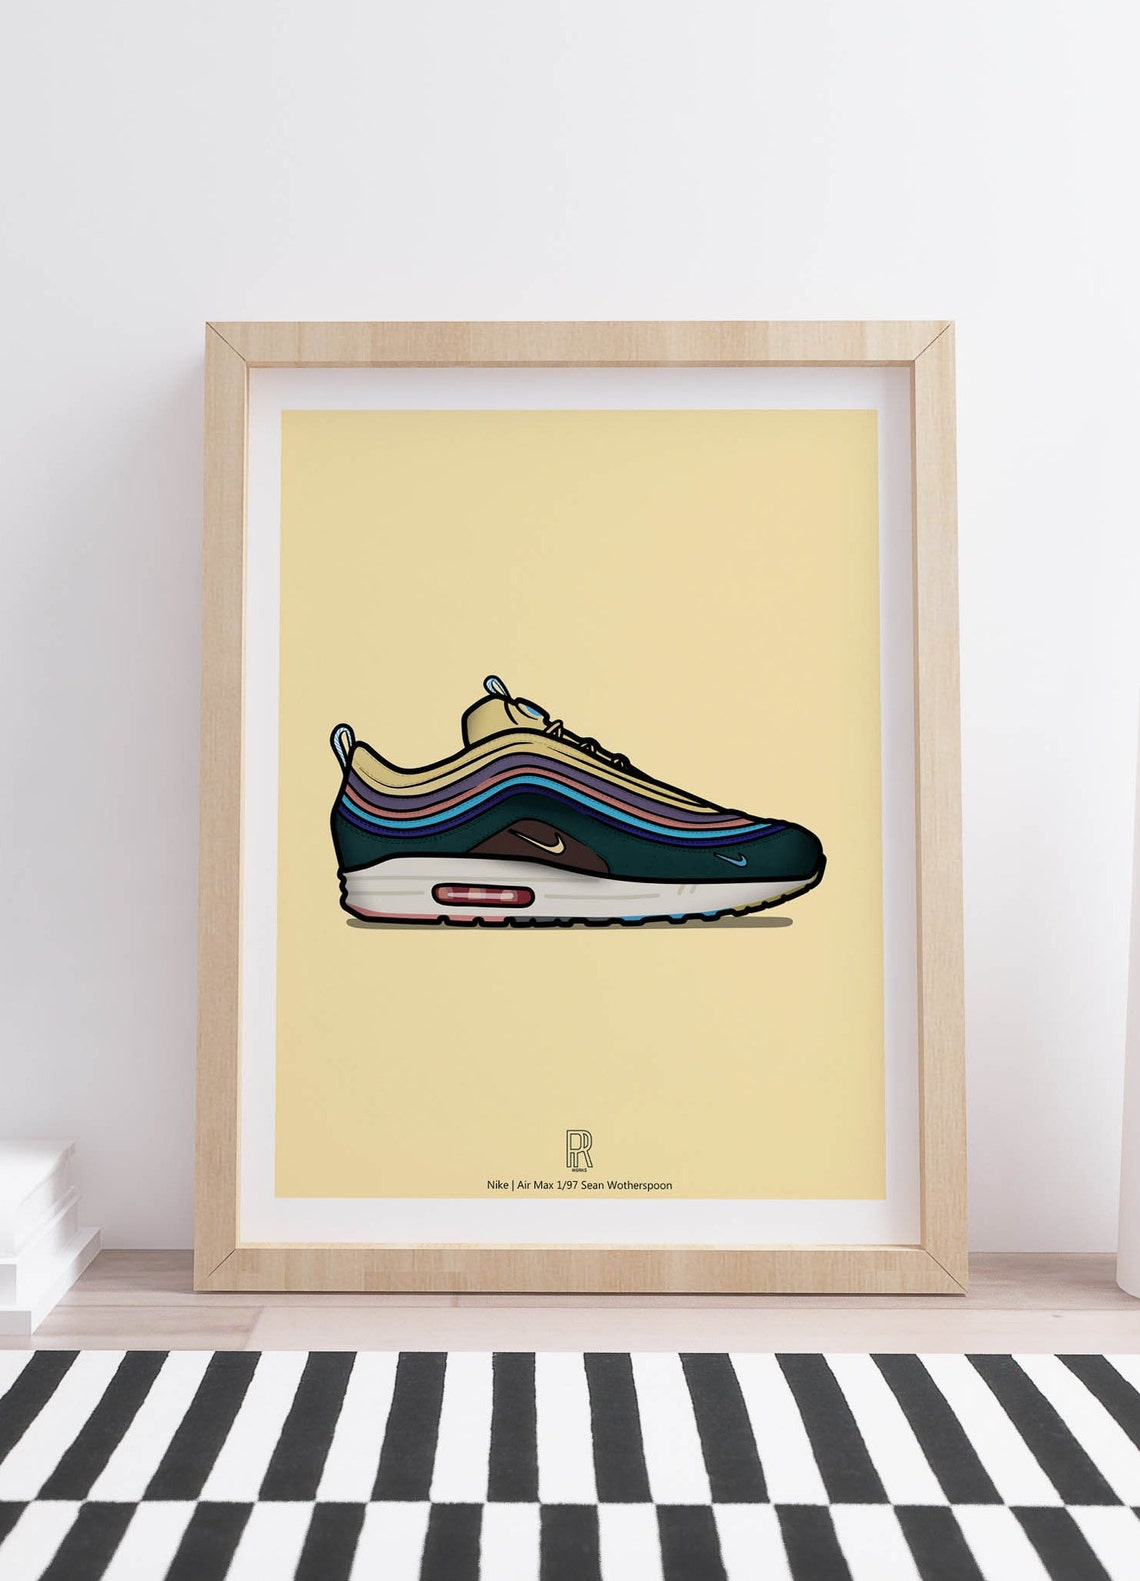 Air Max 1/97 Sean Wotherspoon Digital Artwork poster A3 Dorm image 0